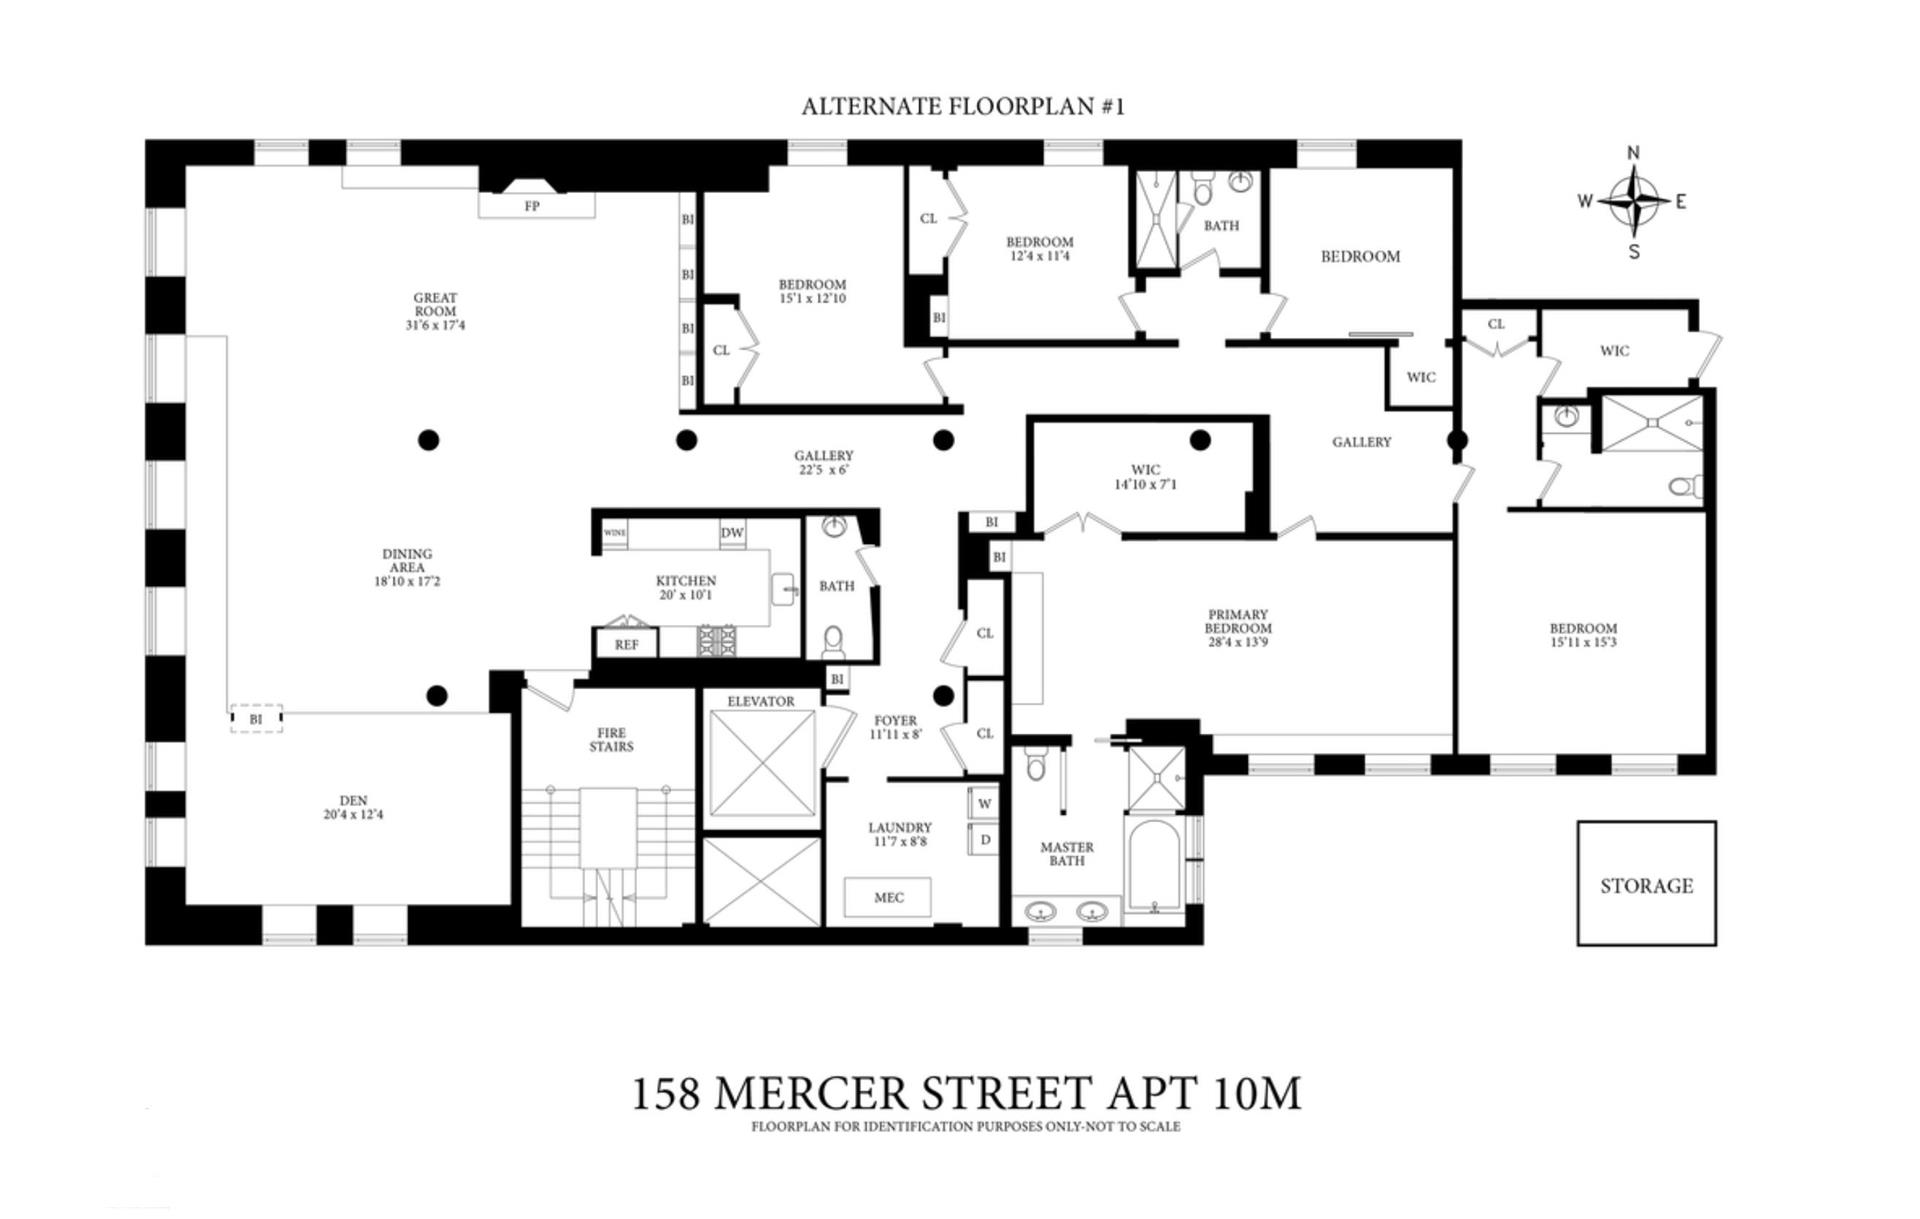 158 Mercer Street Soho New York NY 10012